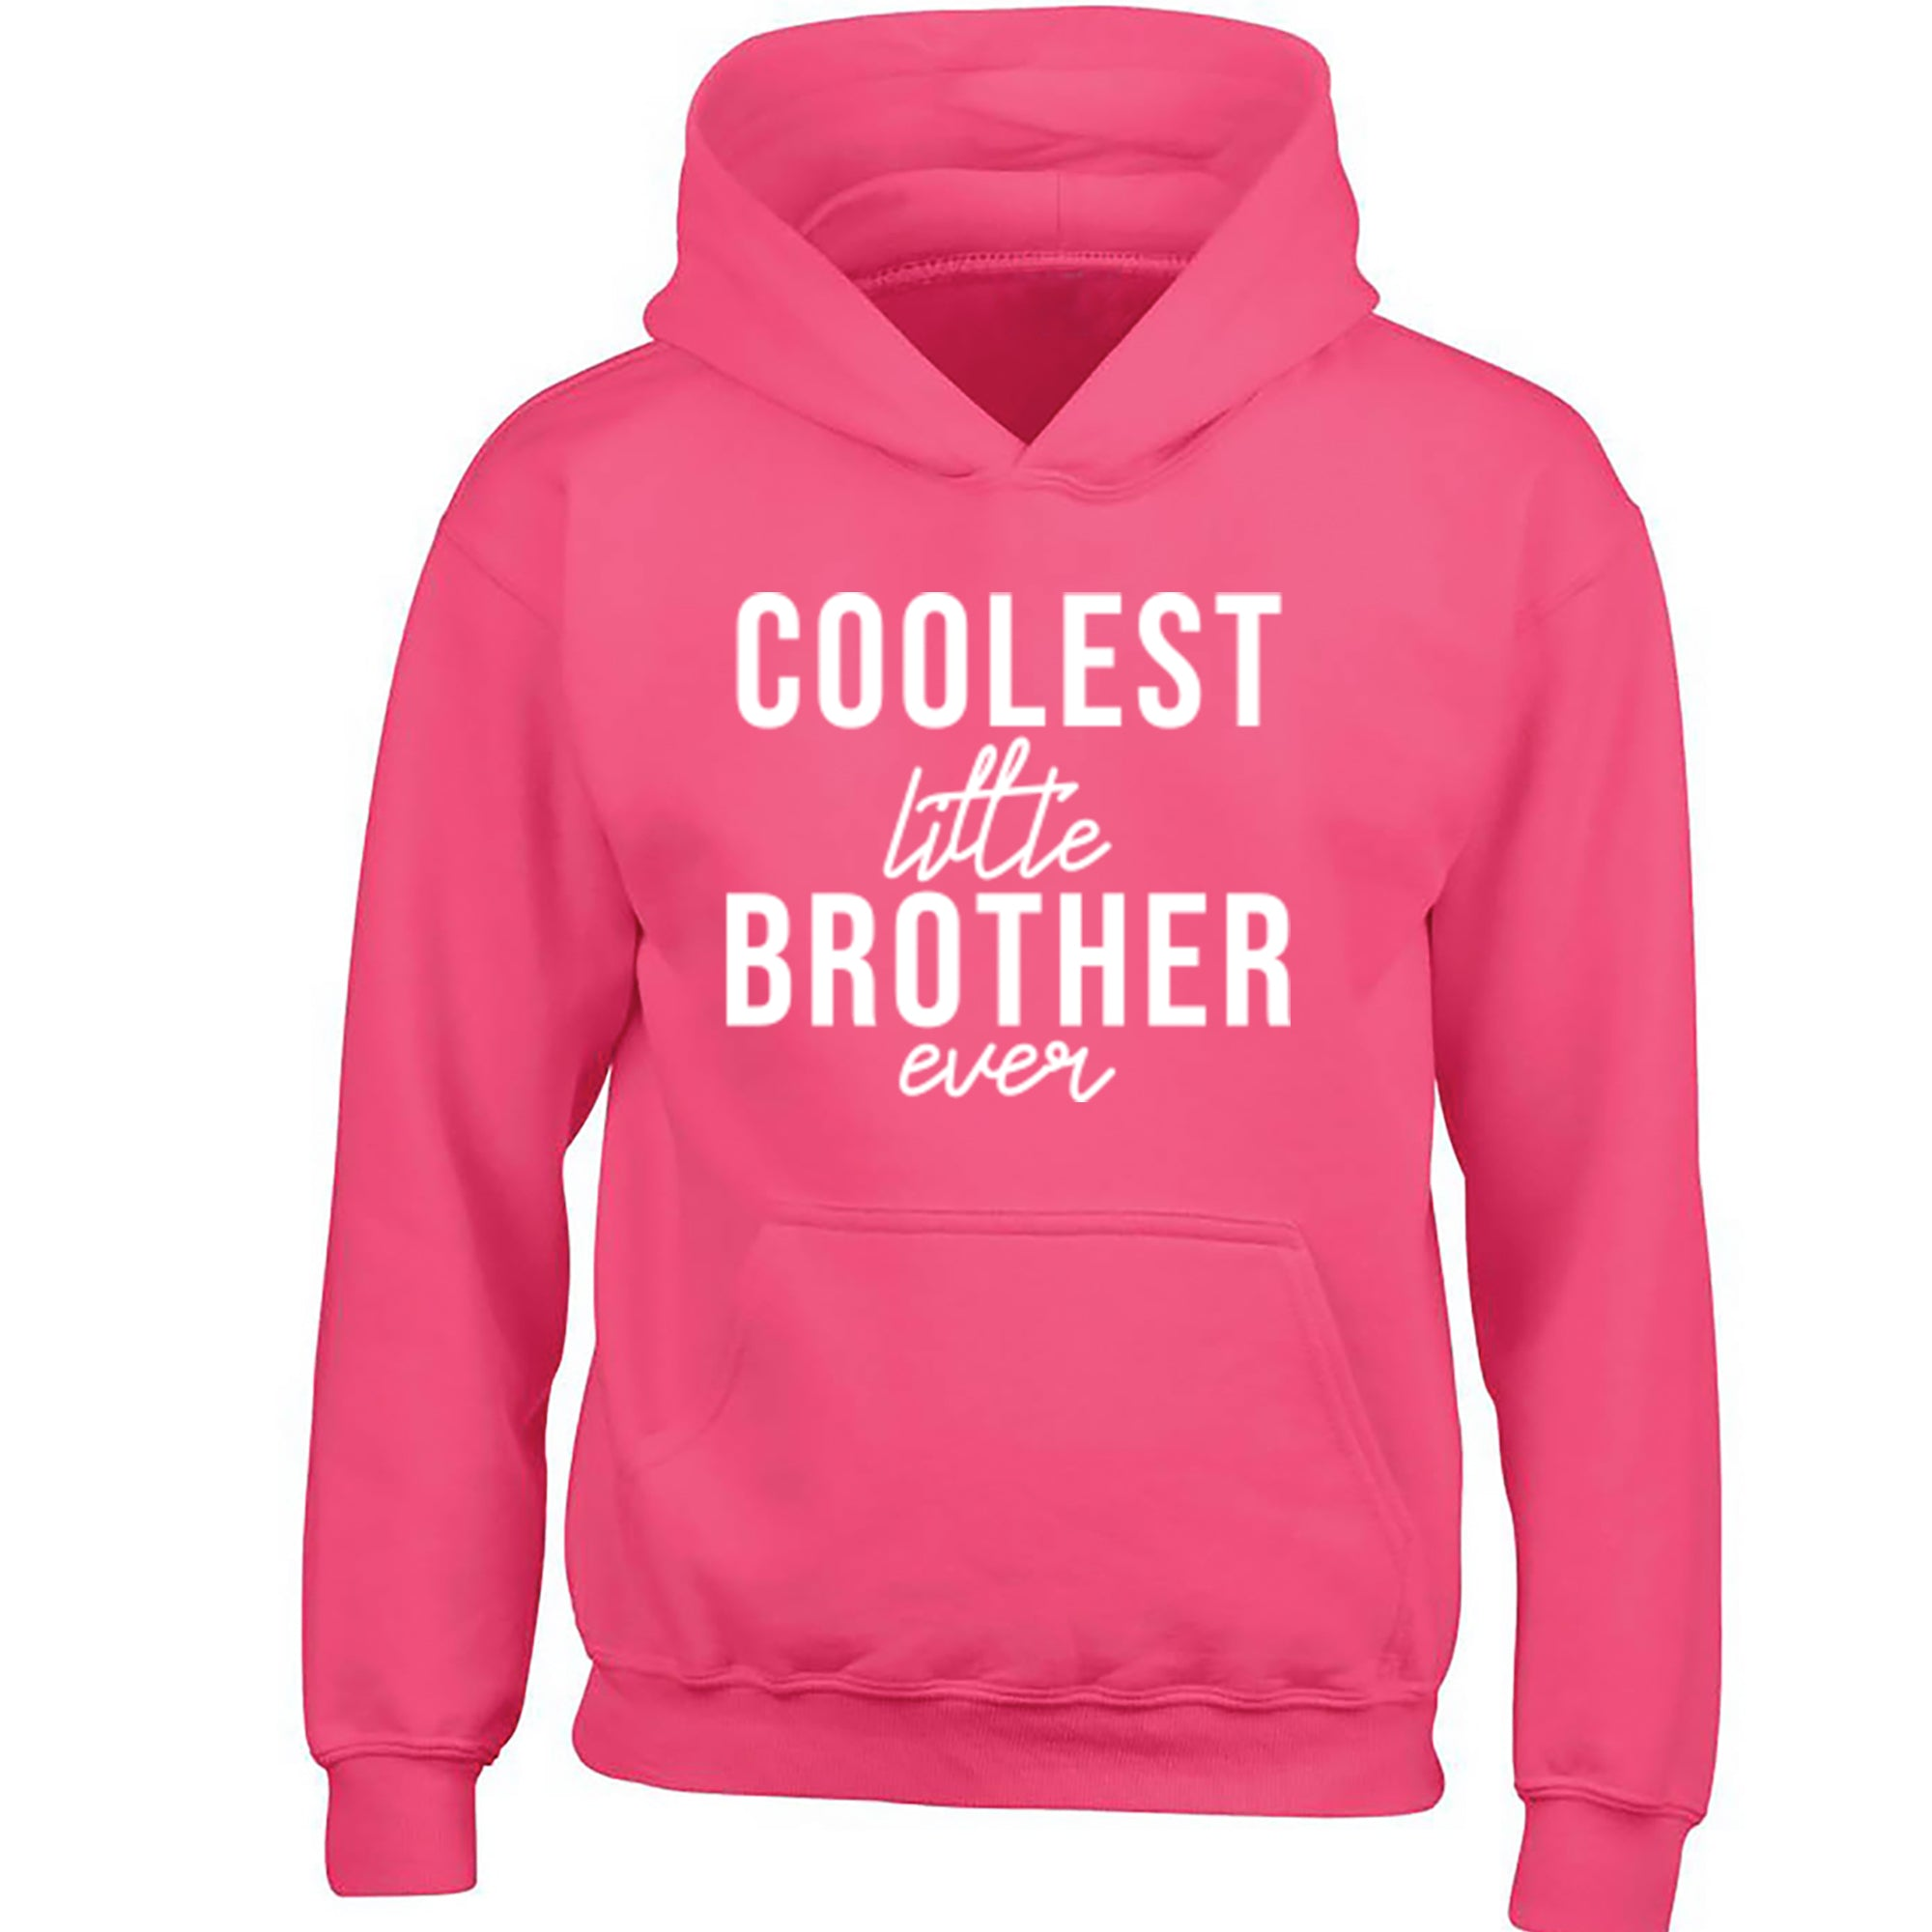 Coolest Little Brother Ever Childrens Ages 3/4-12/14 Unisex Hoodie S0517 - Illustrated Identity Ltd.